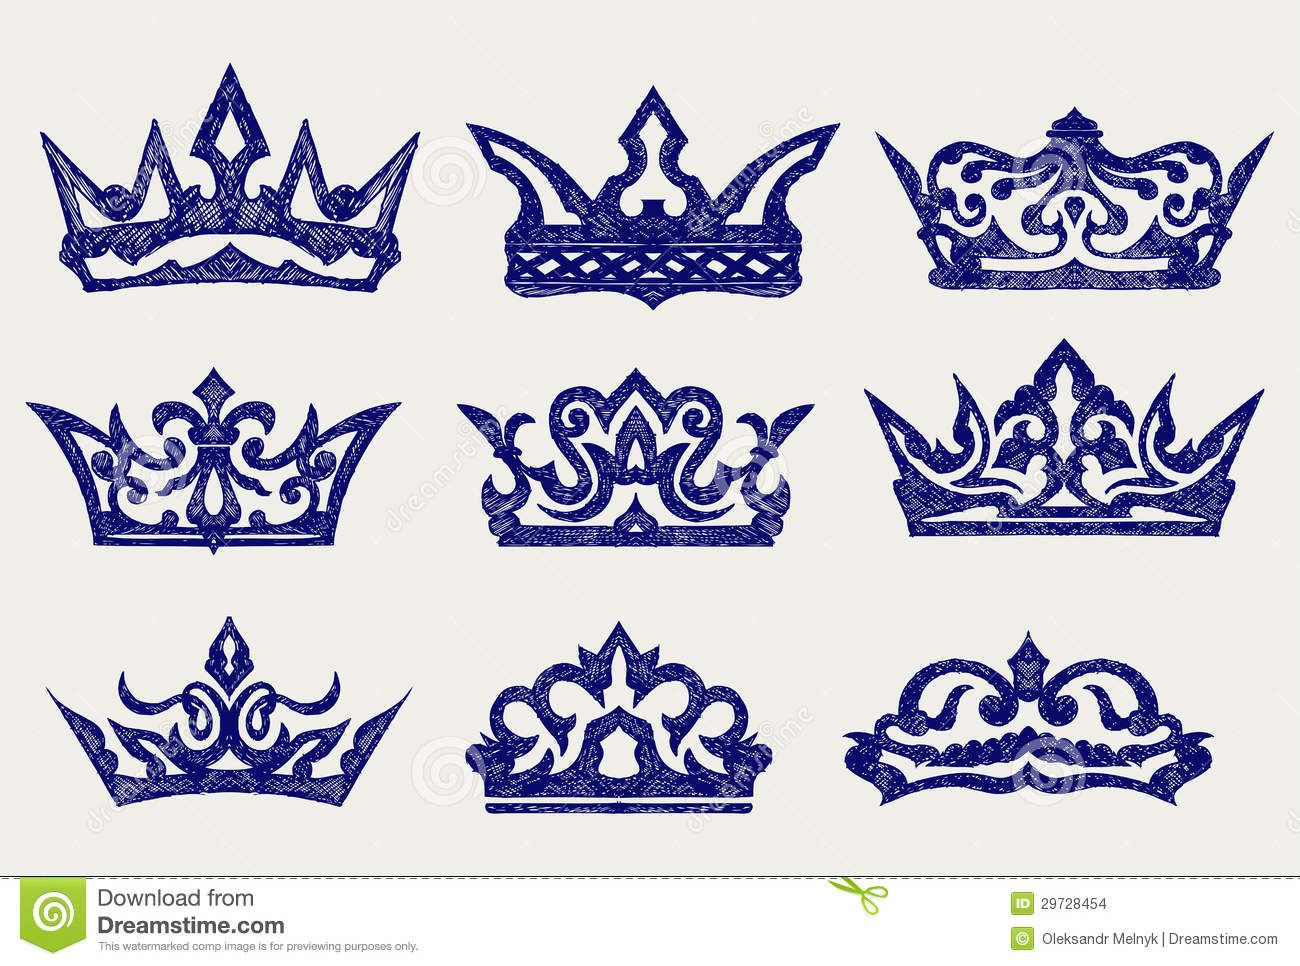 King And Queen Tattoo Font: Graffiti King Crown Drawing